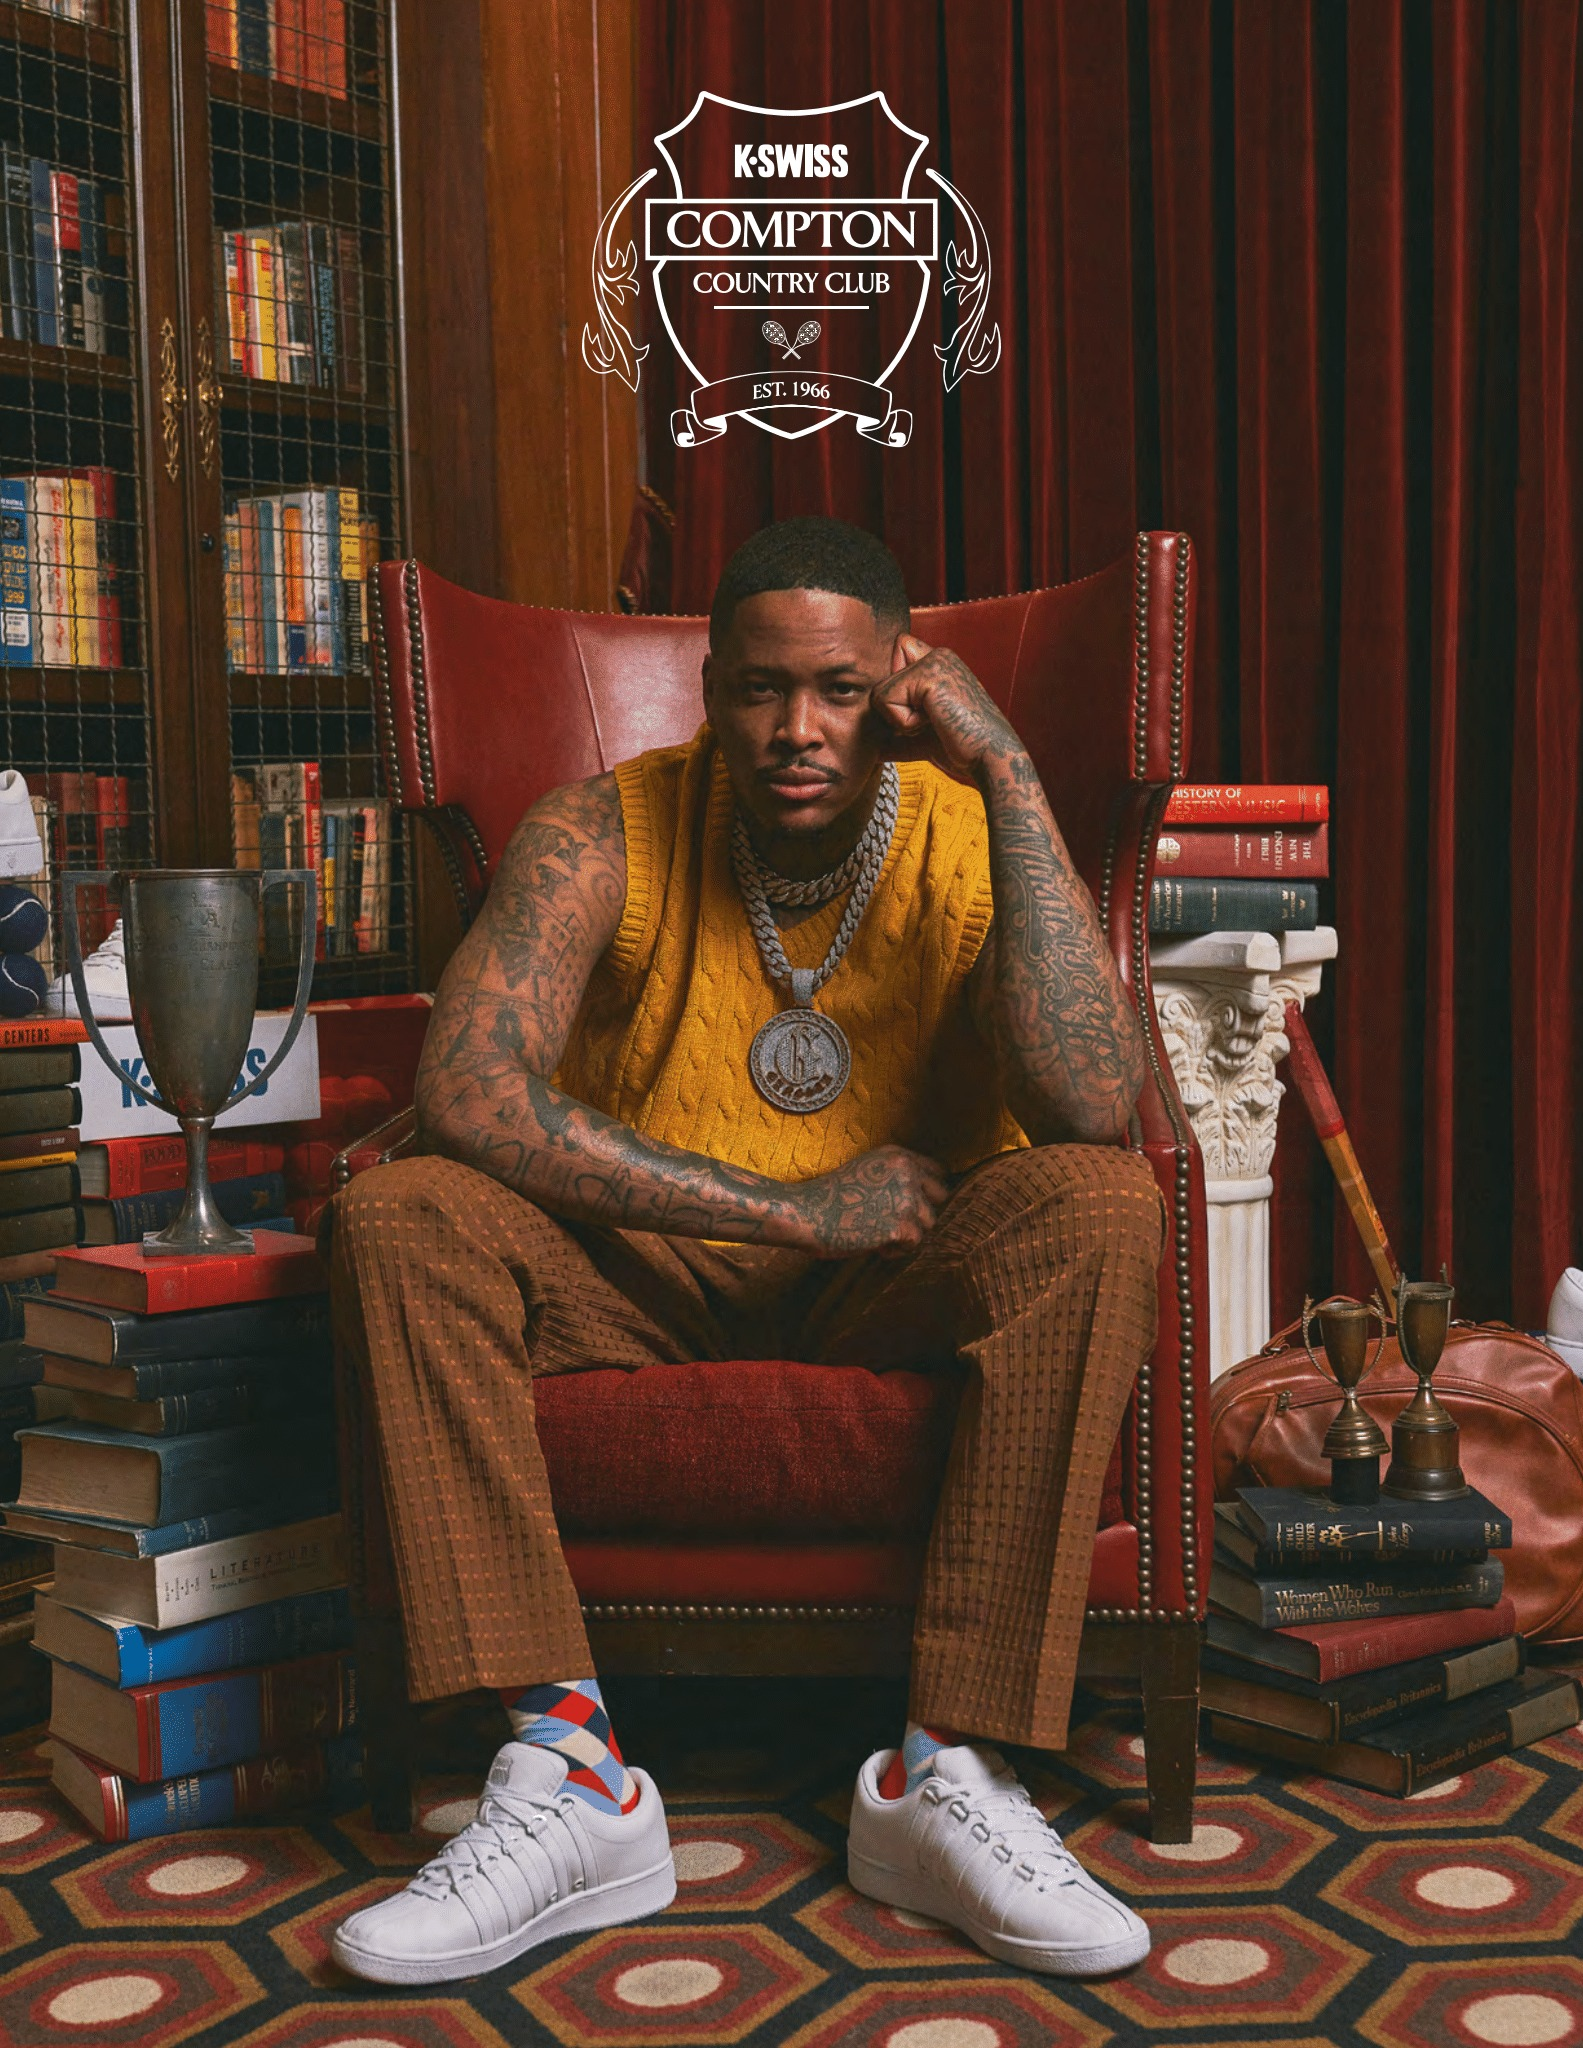 YG-KSWISS-Compton-Country-Club campaign lx classic sneaker